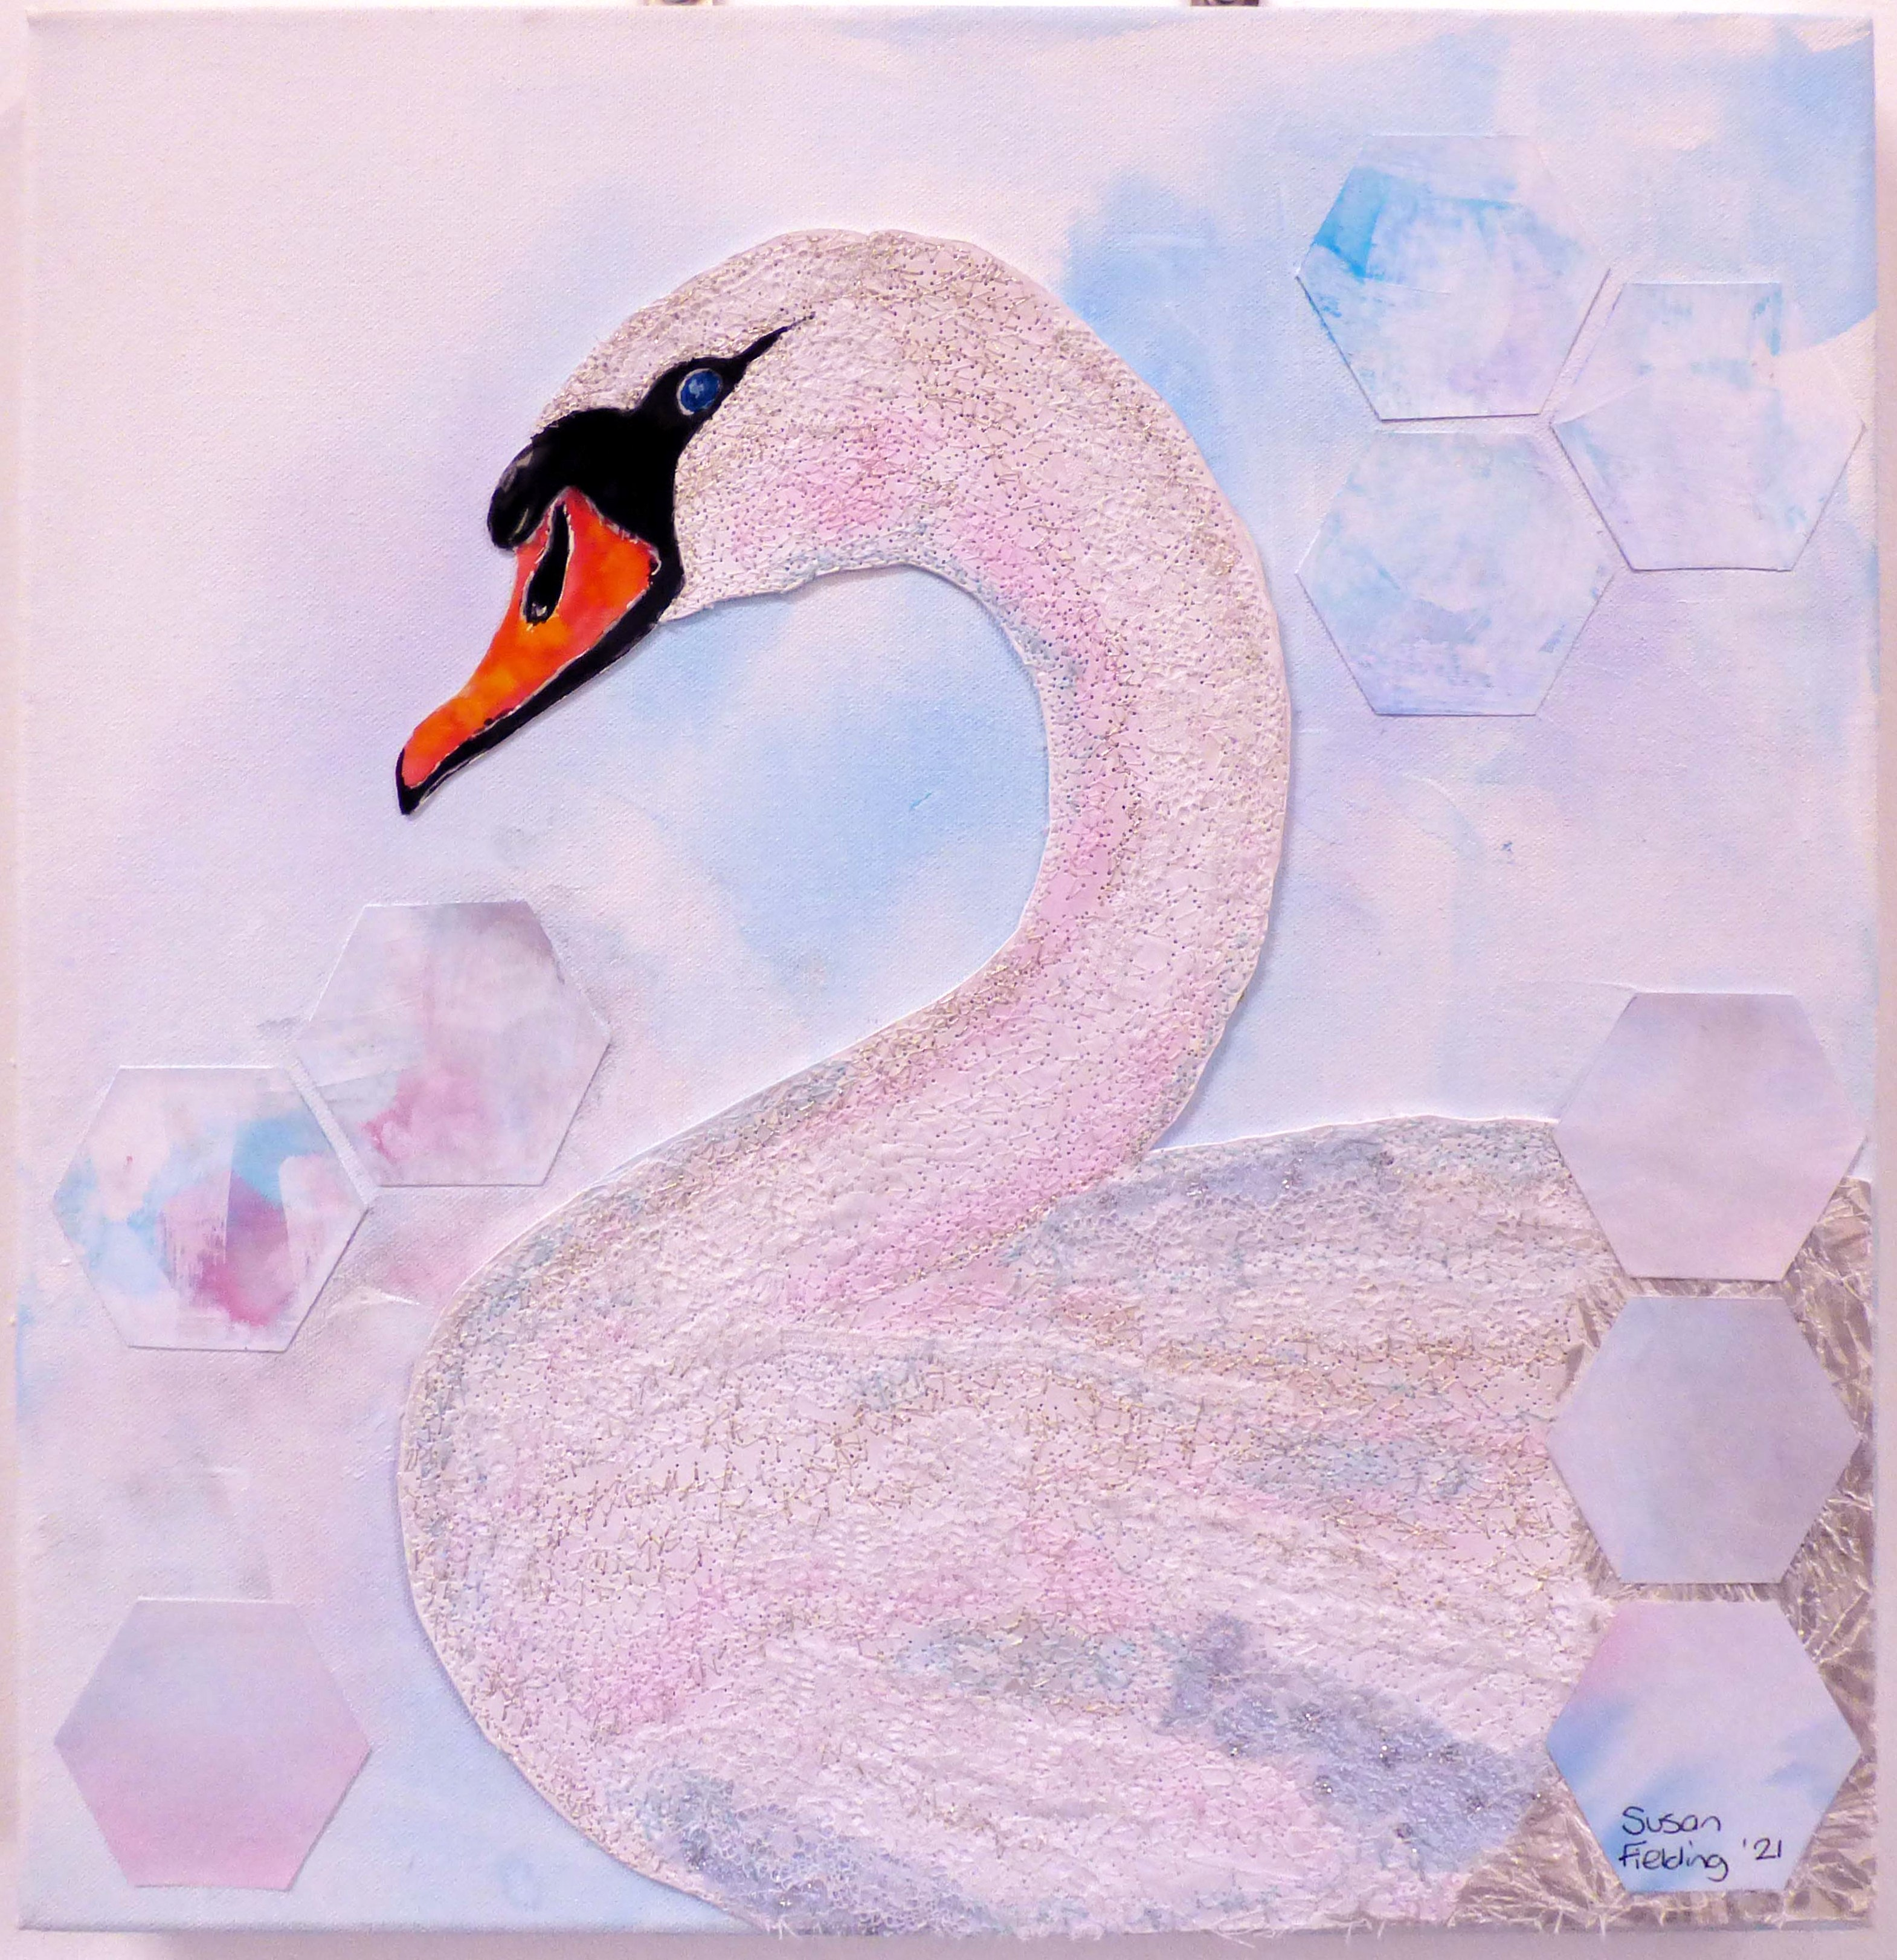 SWAN by Susan Fielding, Natural Progression Group, July 2021